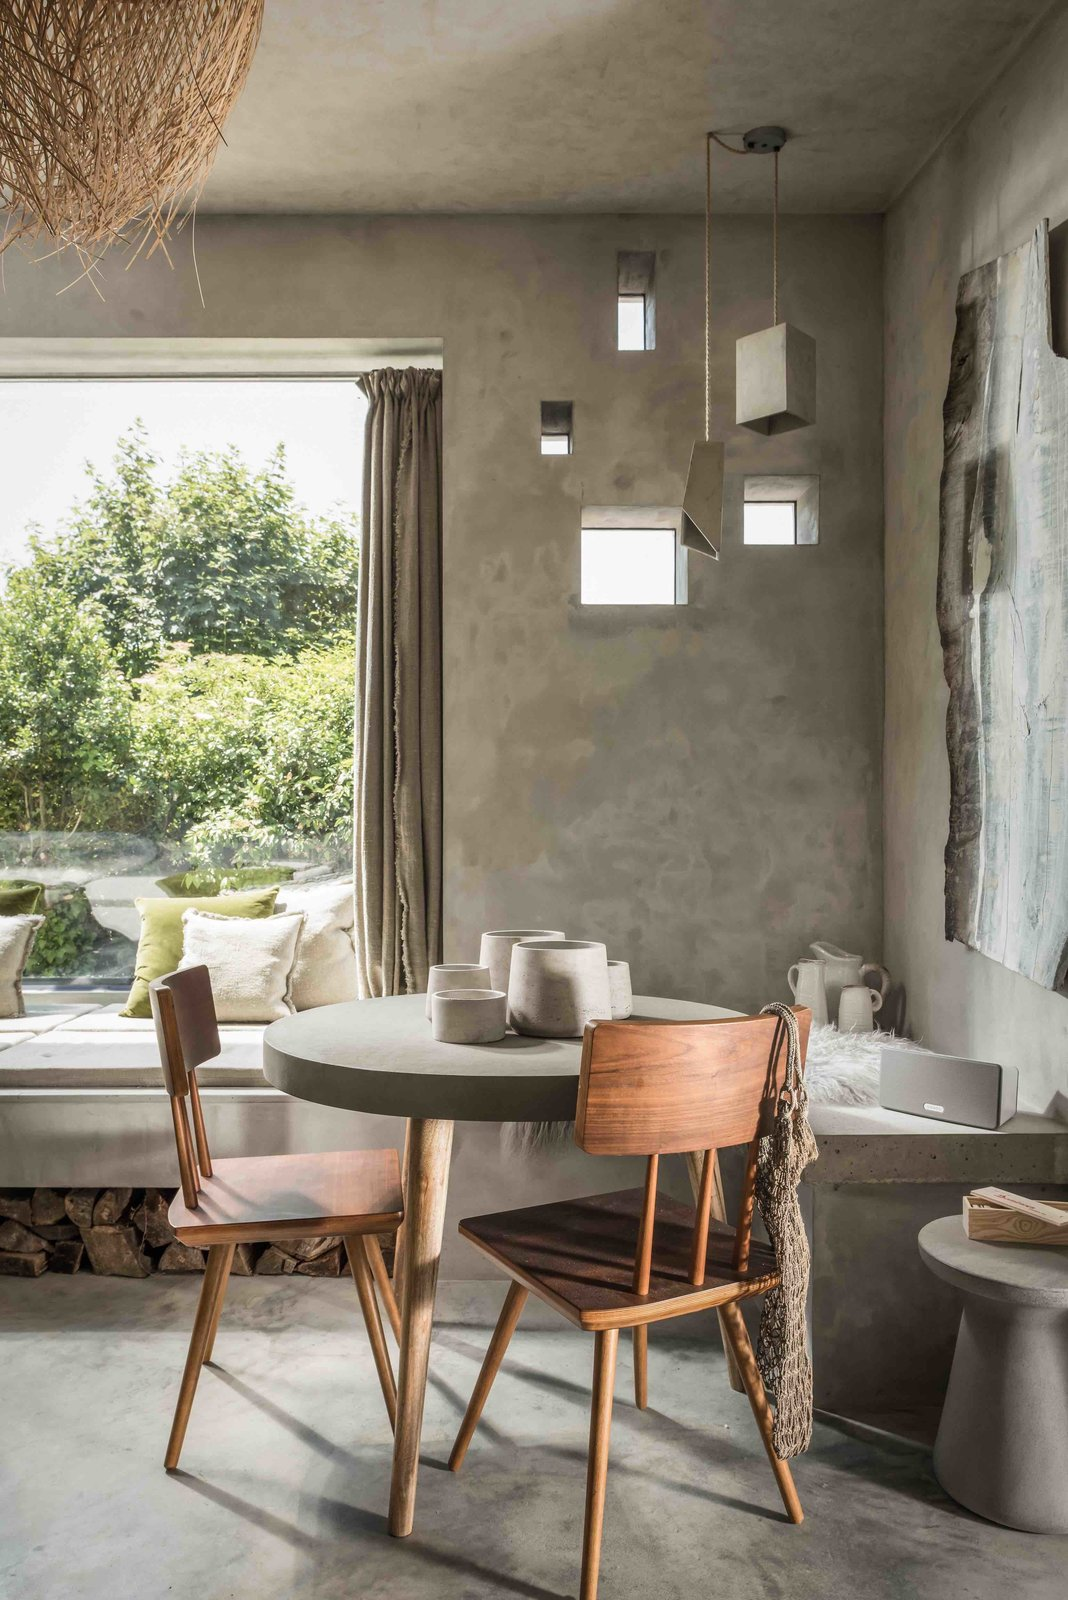 Dining Room, Table, Chair, Bench, Stools, Pendant Lighting, and Concrete Floor  Photo 6 of 13 in Hide Out in a Tiny Concrete-and-Shingle Cottage For Rent in Cornwall